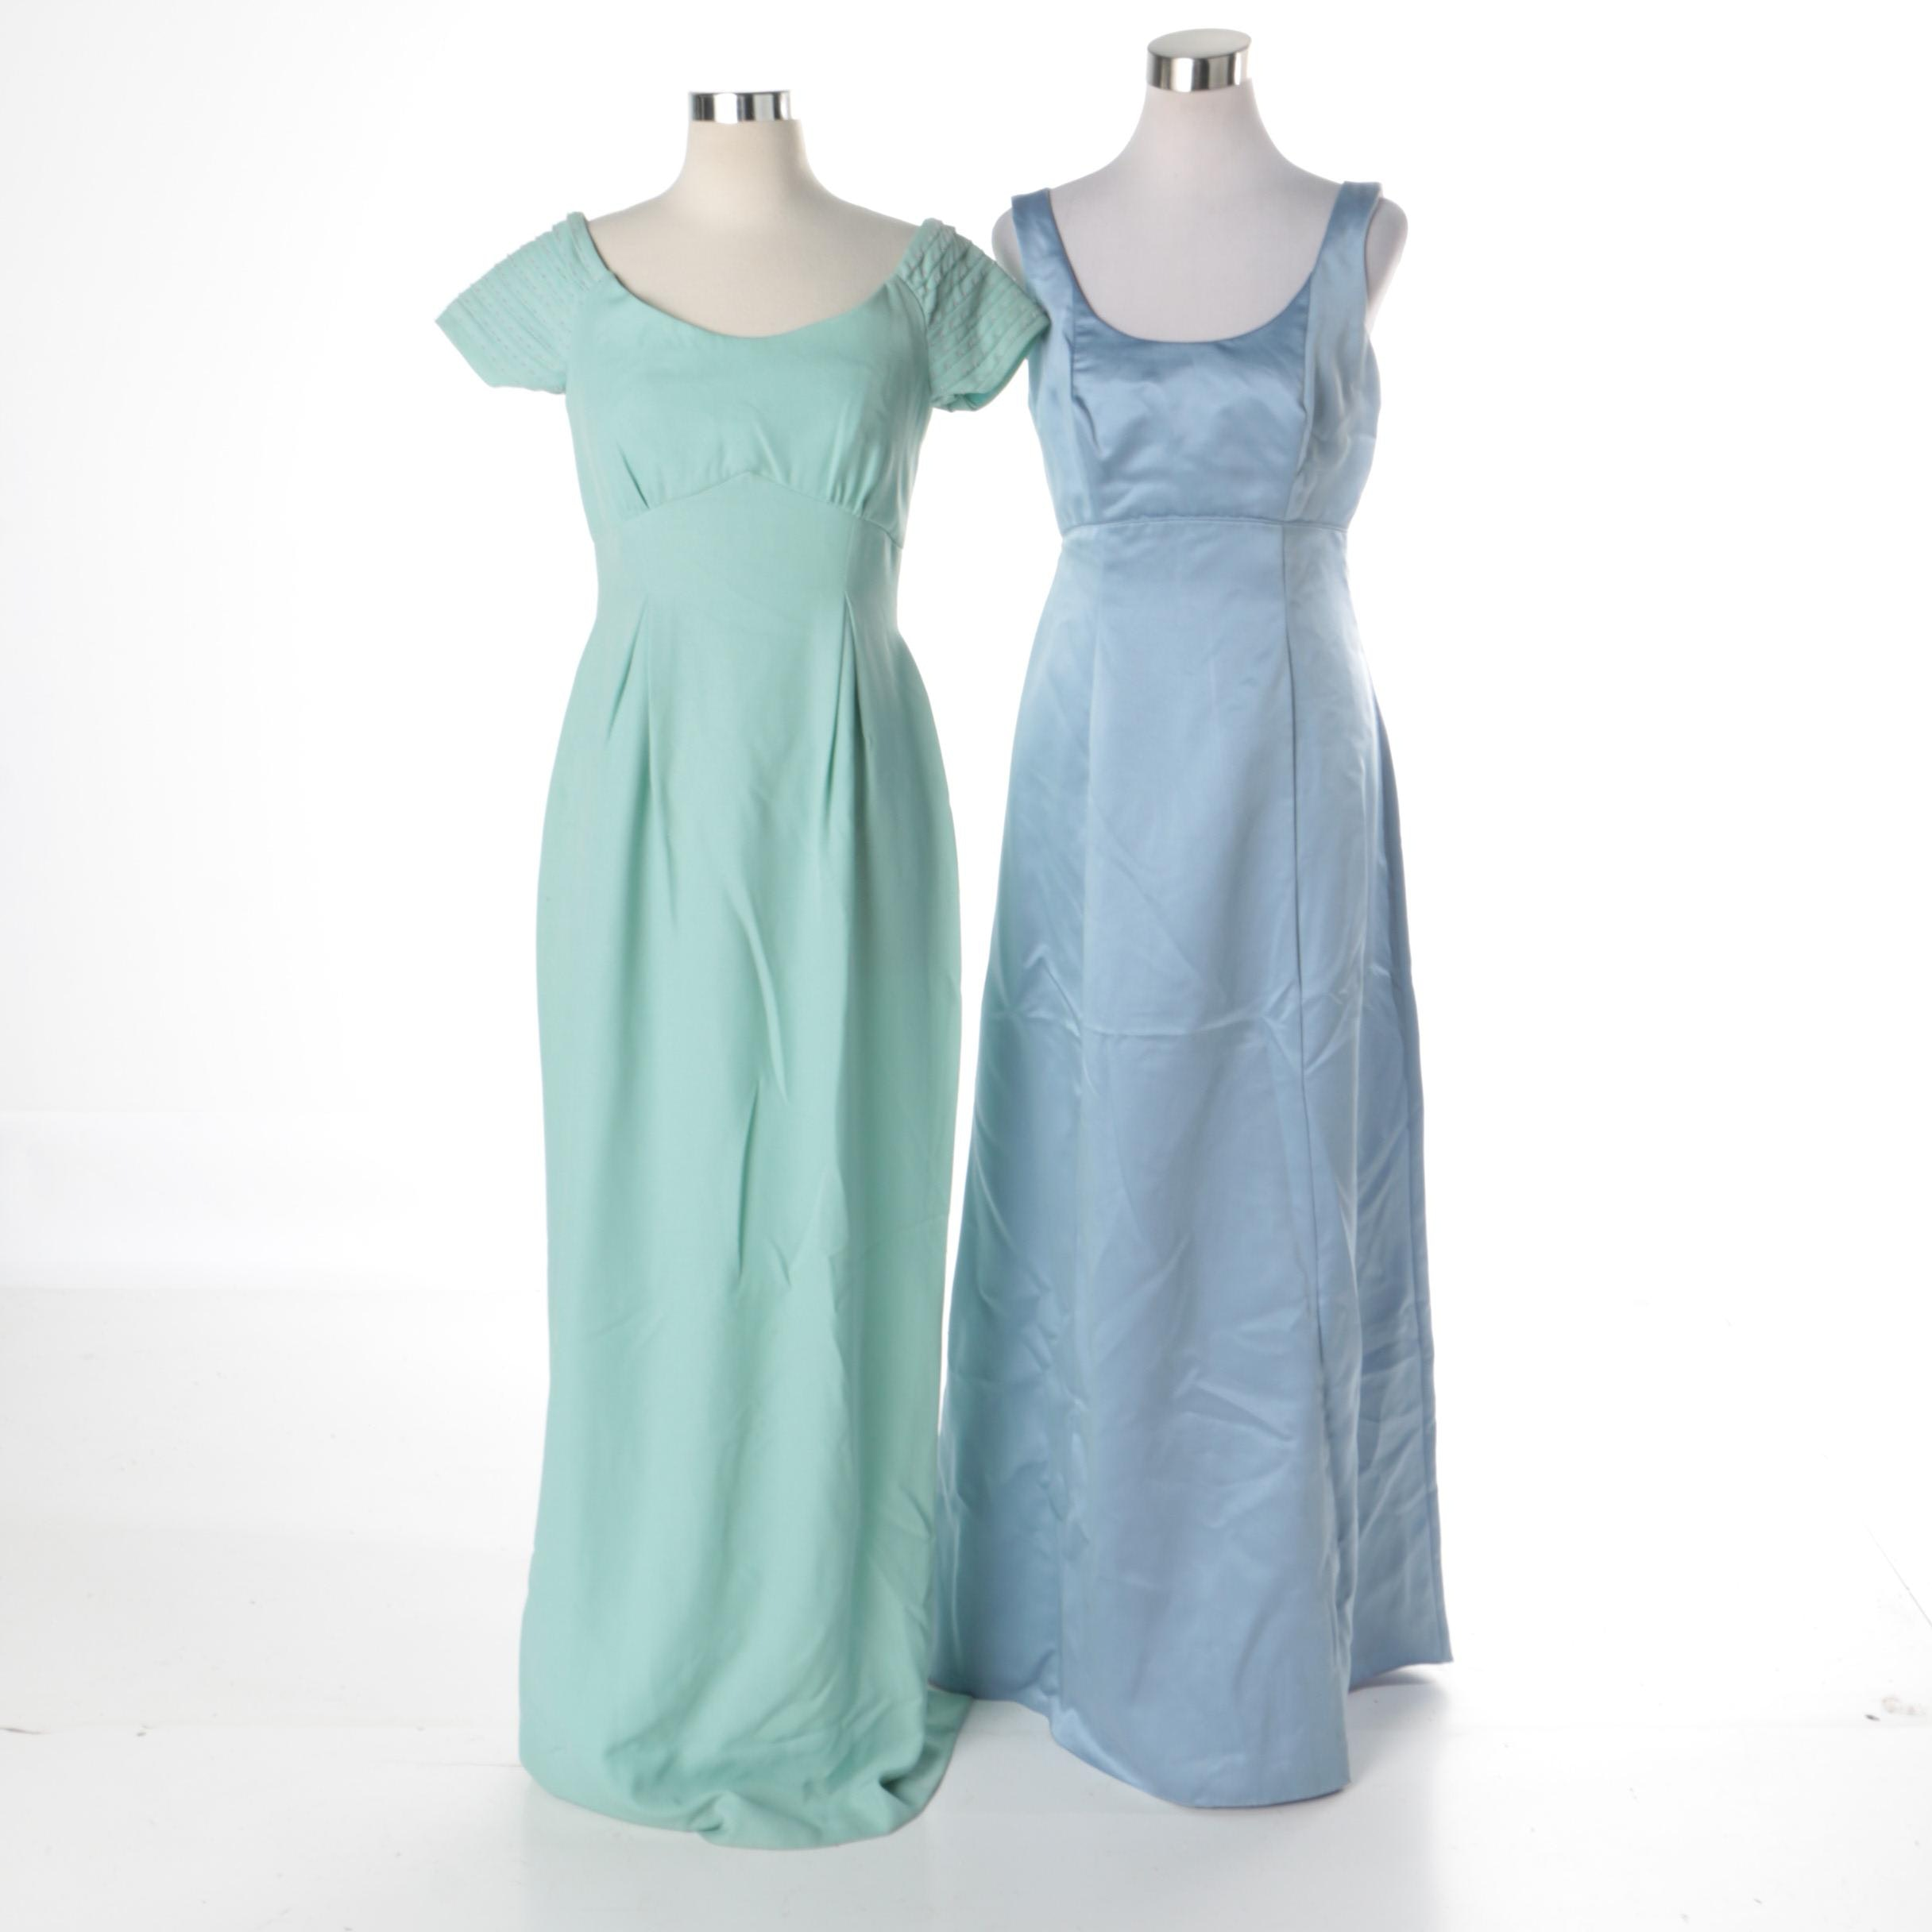 Miiichelle and Vintage House of Bianchi and  Formal Gowns